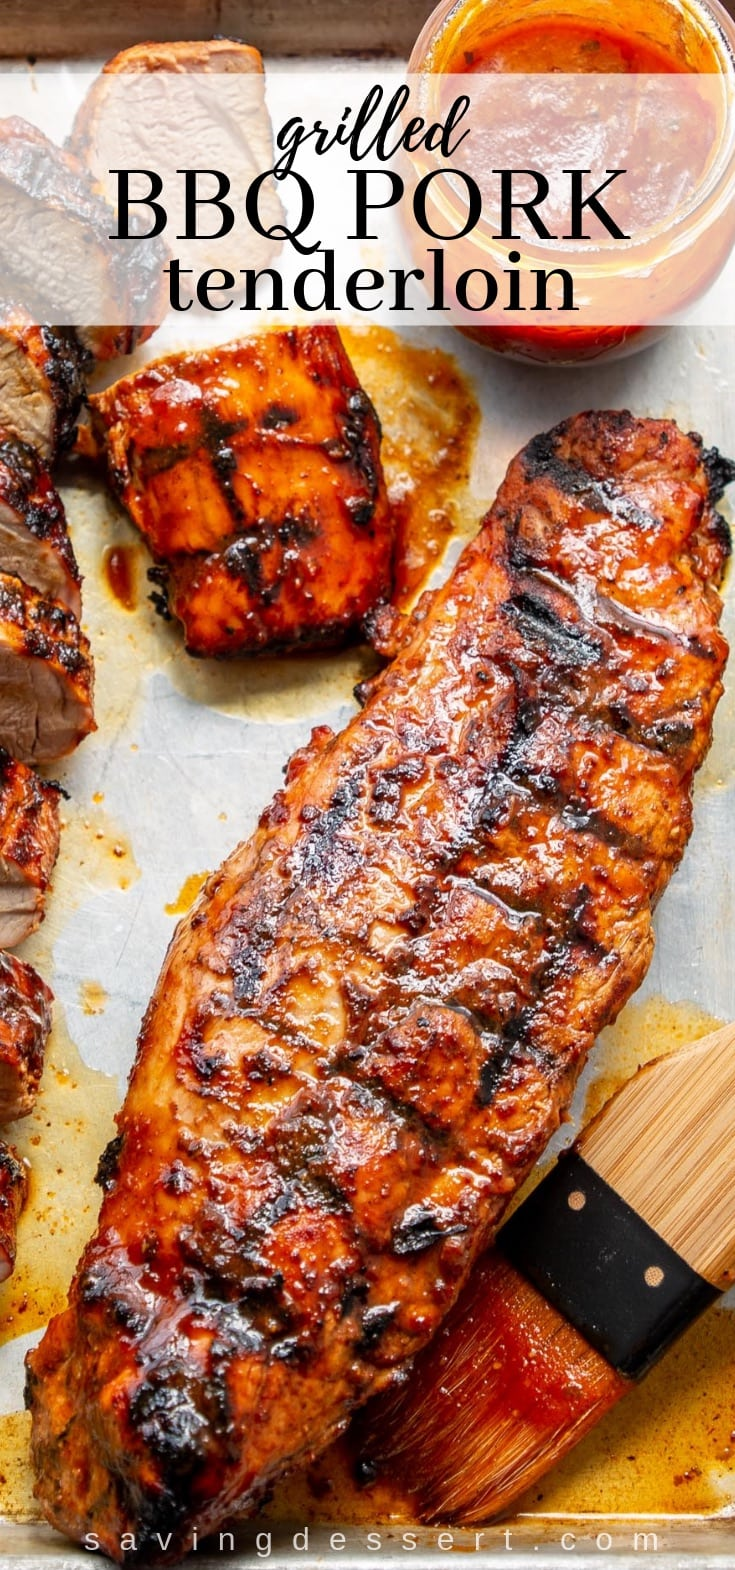 A whole grilled pork tenderloin with homemade BBQ sauce